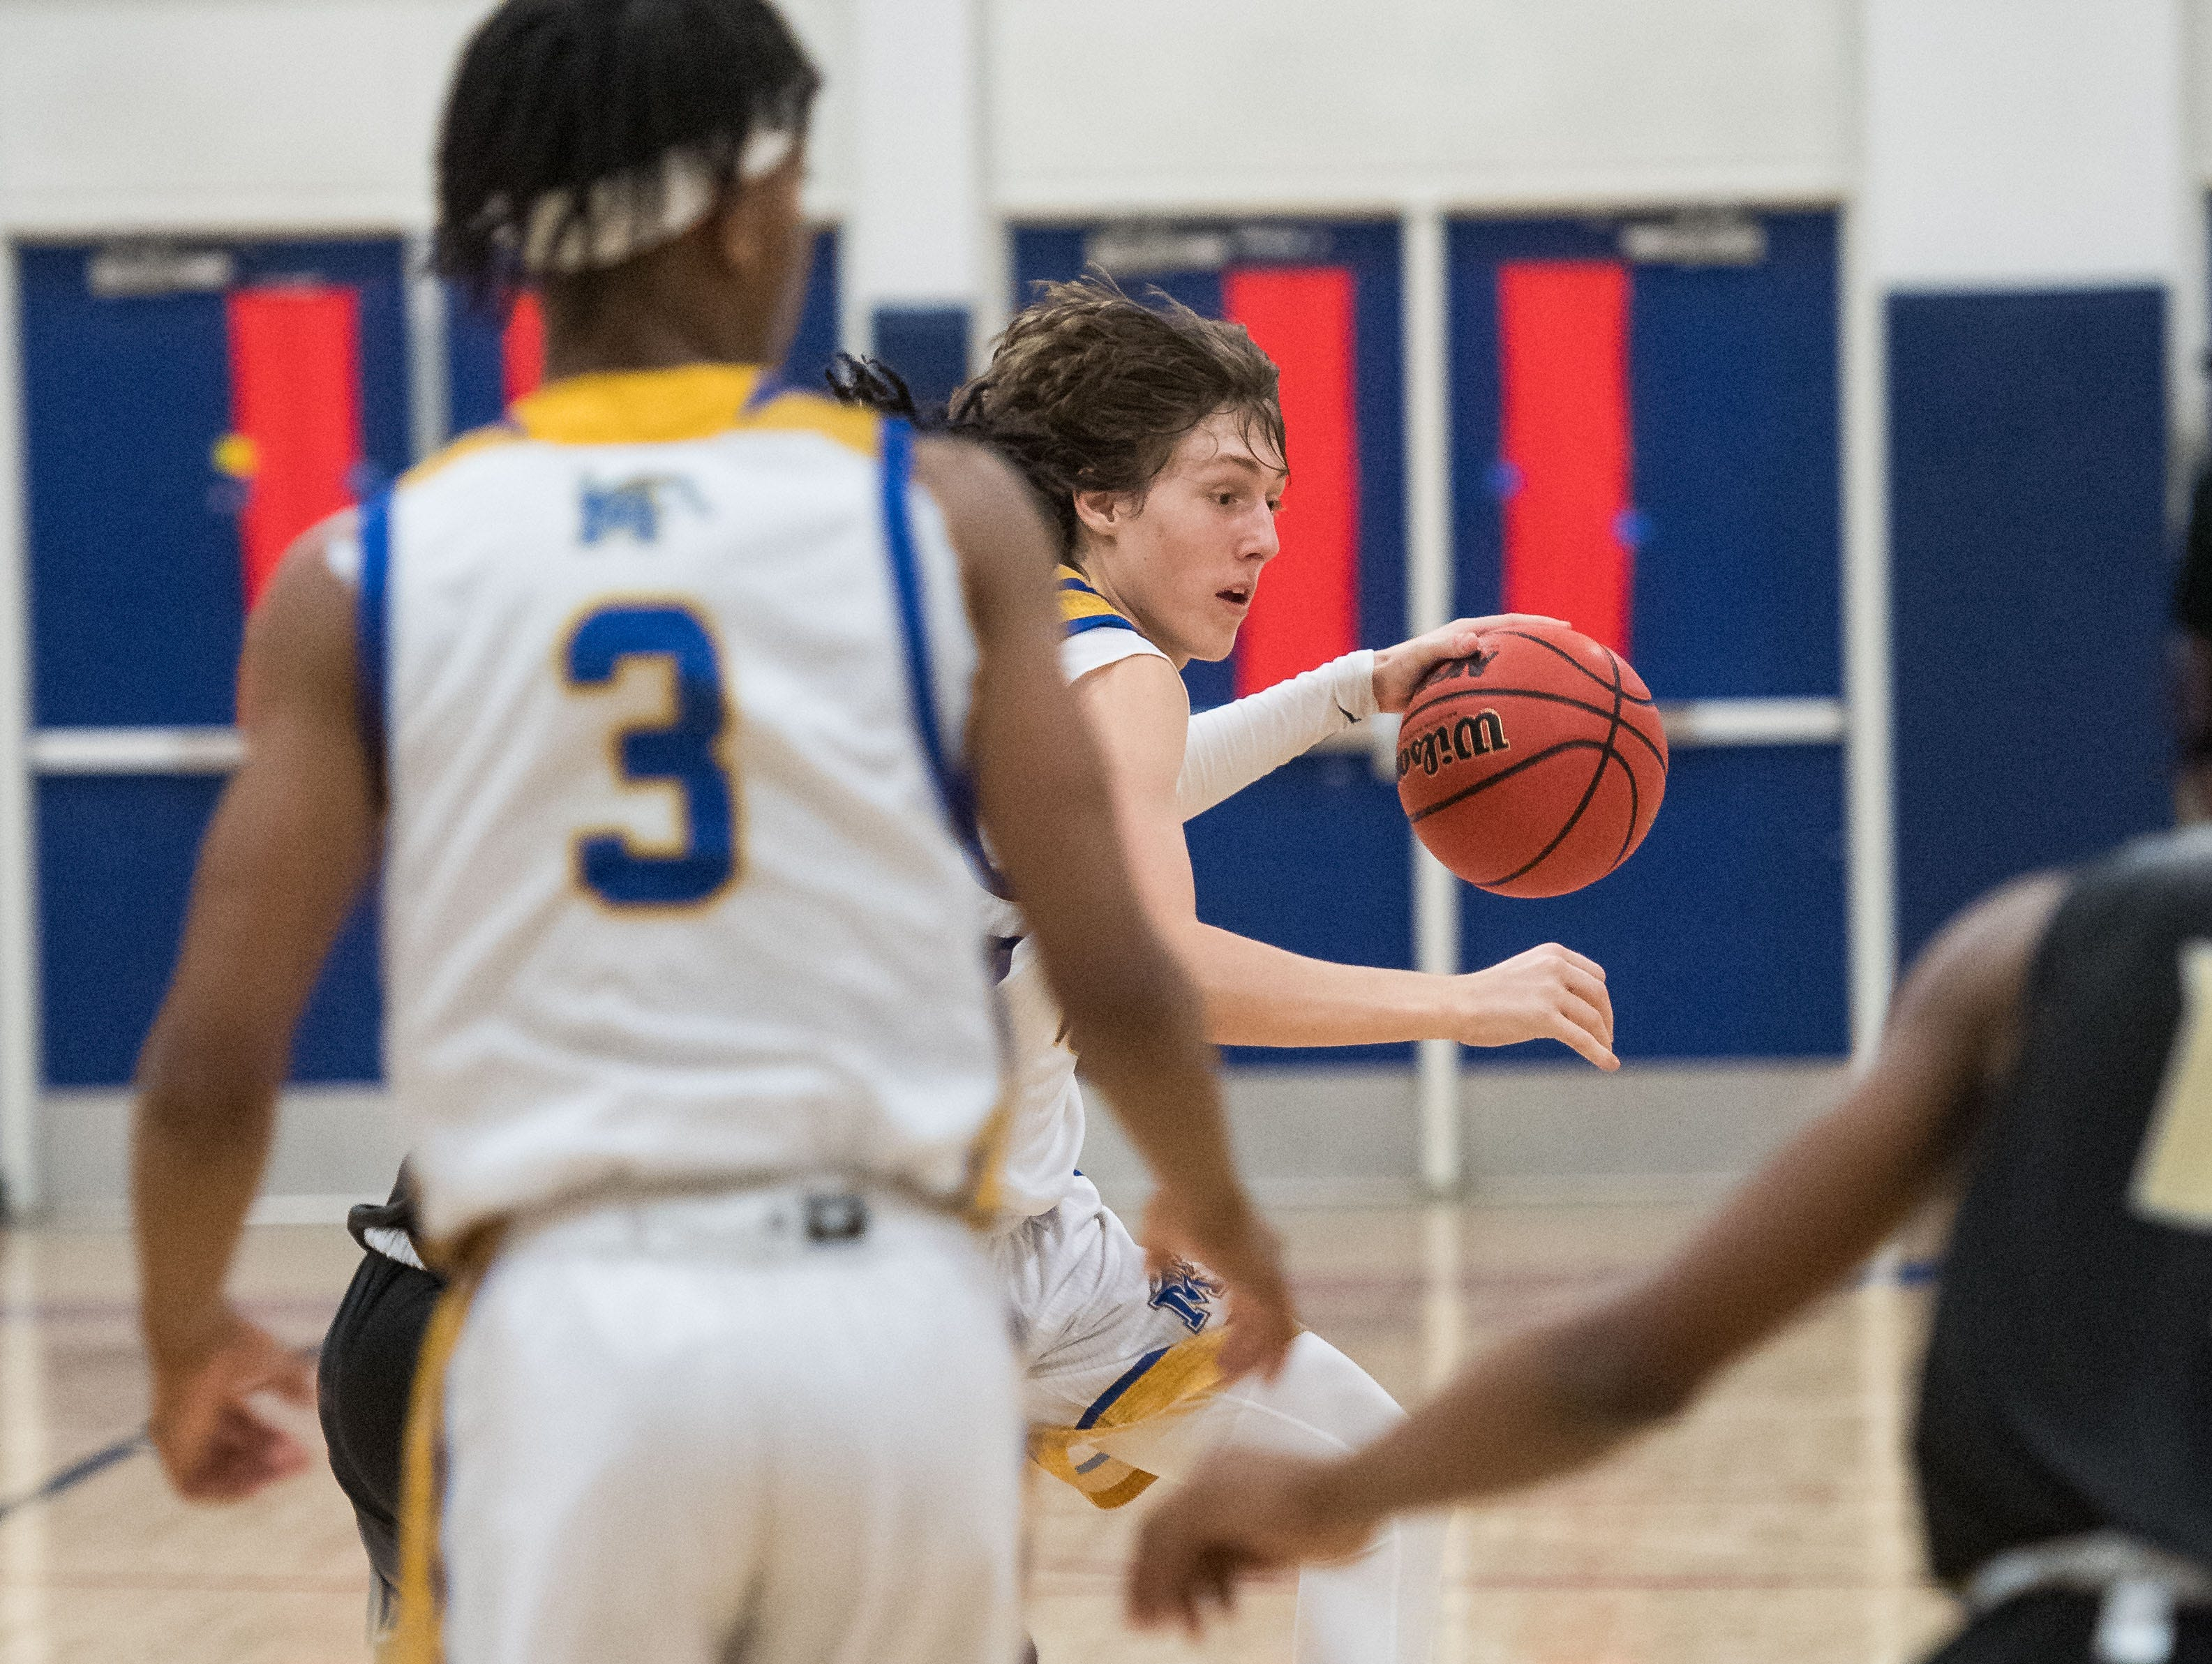 Martin County plays against Treasure Coast during the high school boys basketball District 8-9A tournament game Wednesday, Feb. 13, 2019, at St. Lucie West Centennial High School in Port St. Lucie.